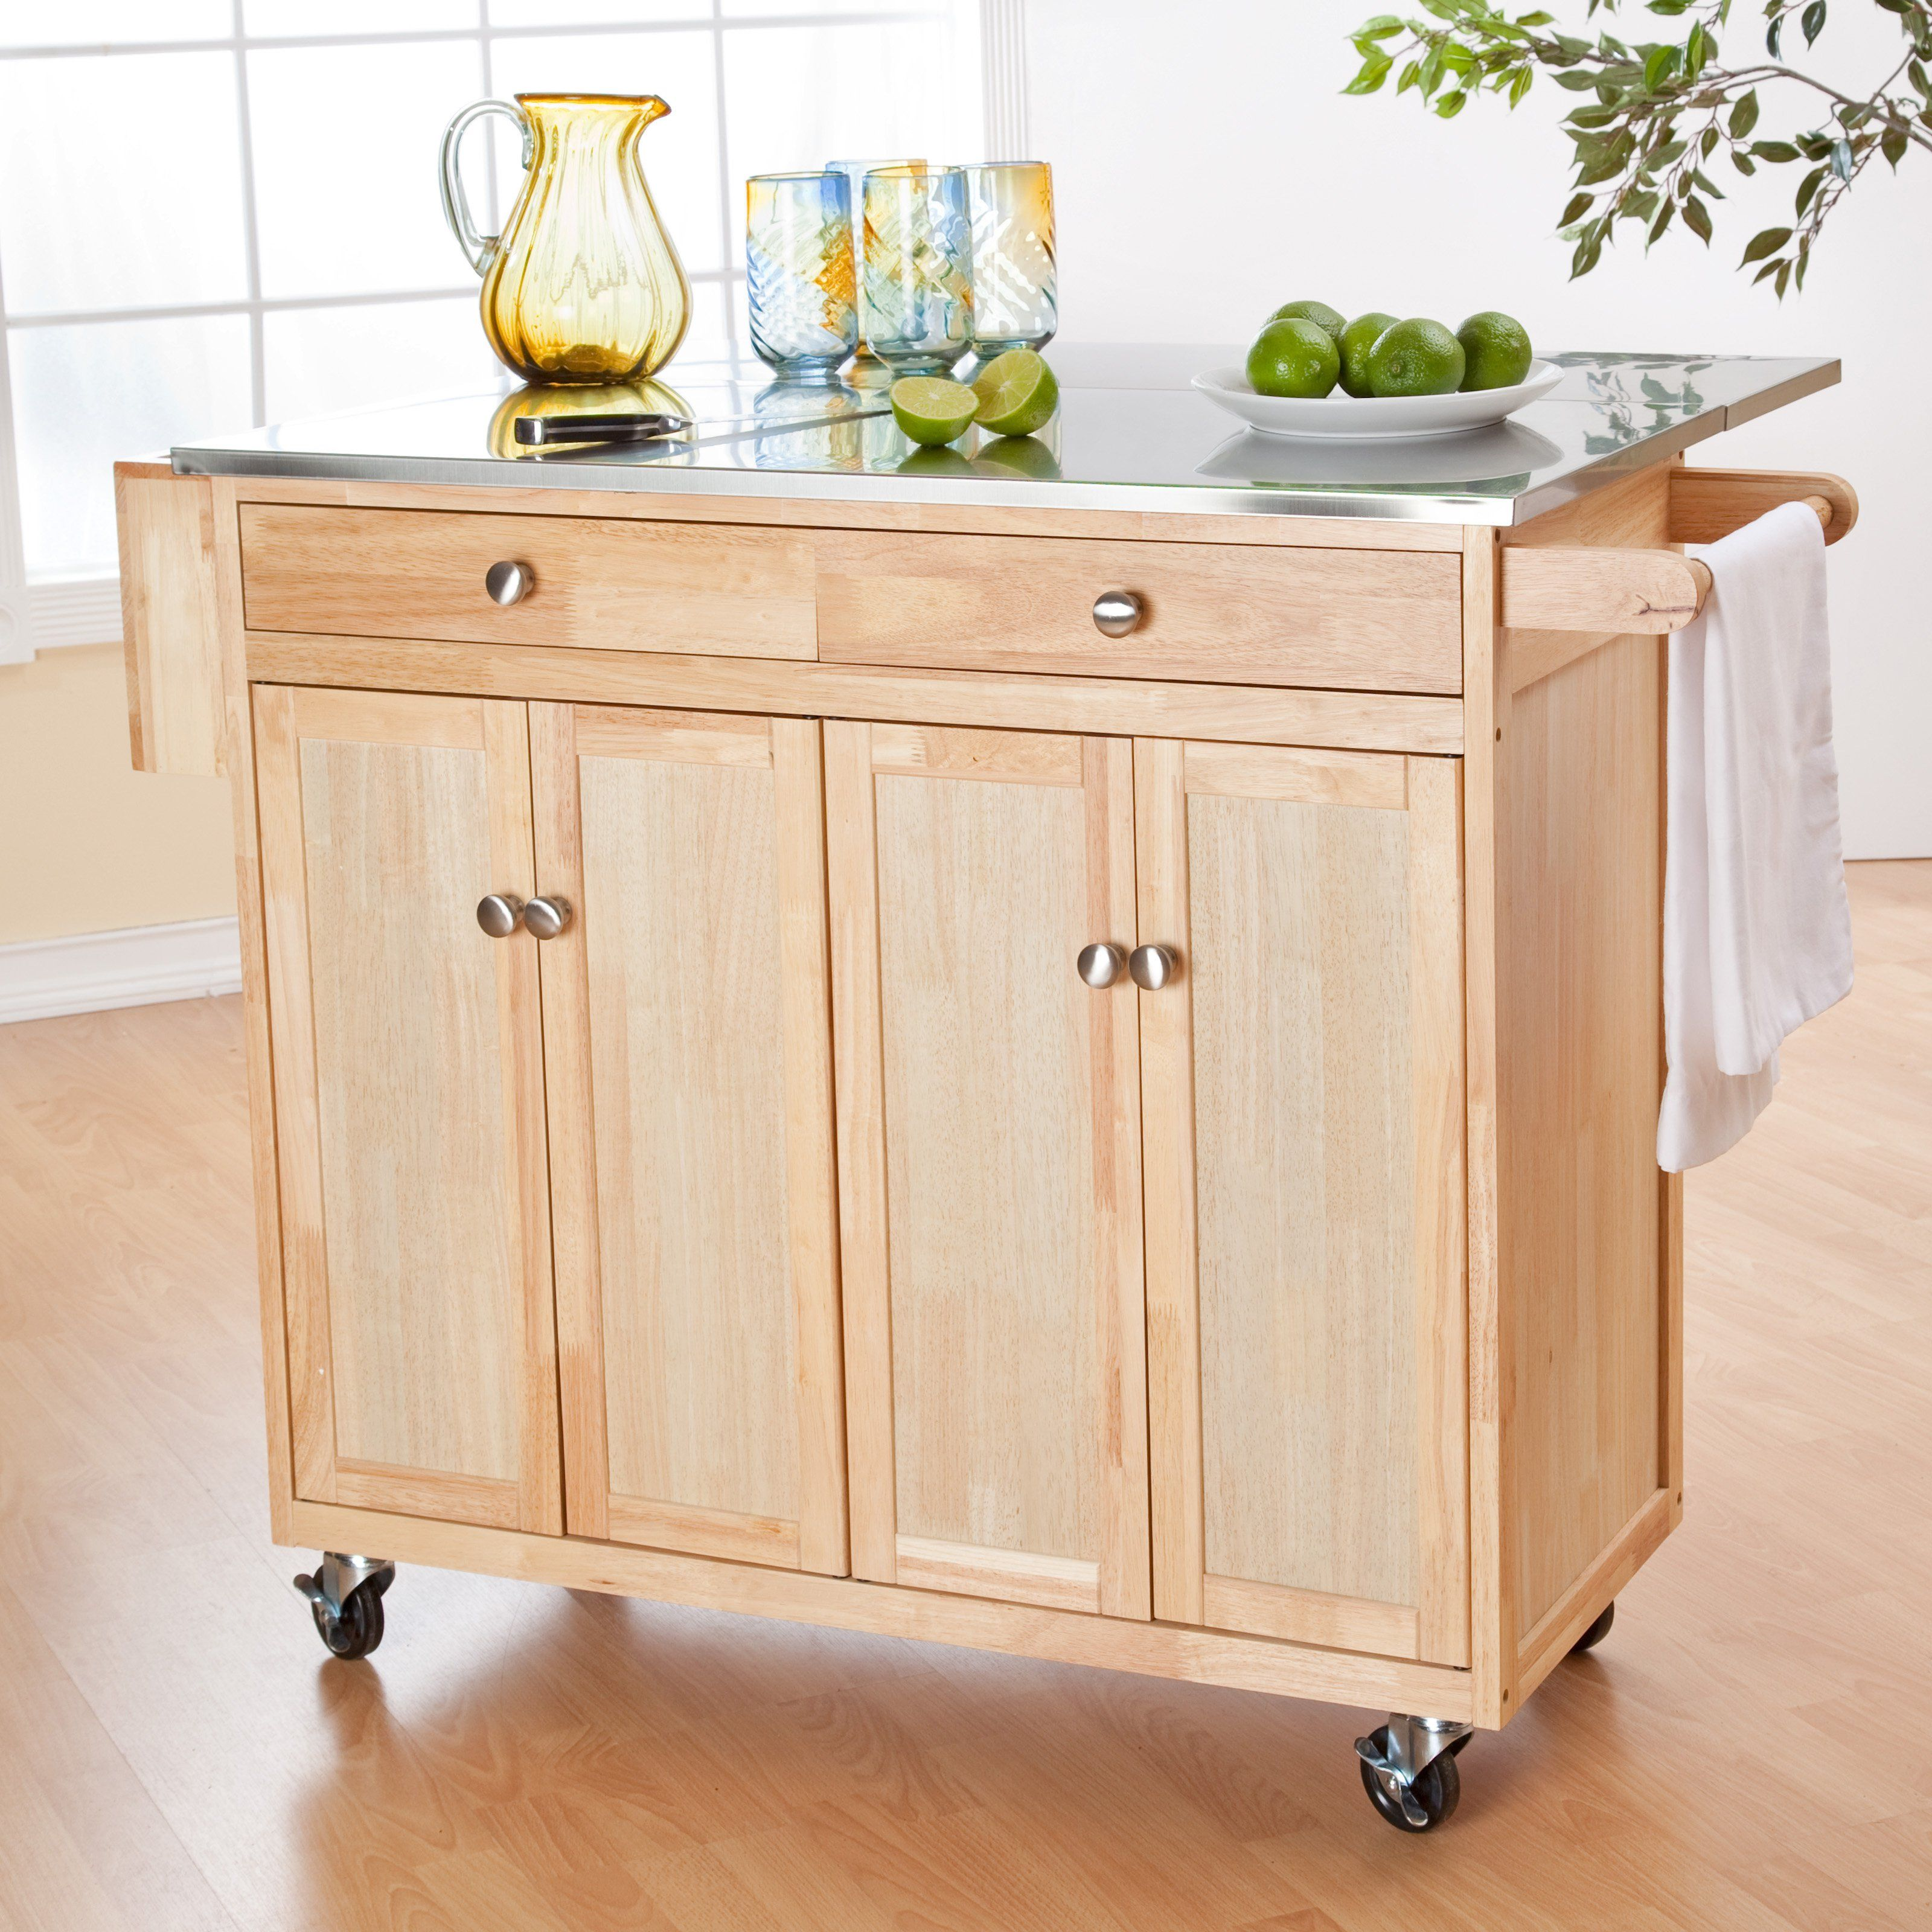 stools for kitchen island Belham Living Milano Portable Kitchen Island with Optional Stools 98